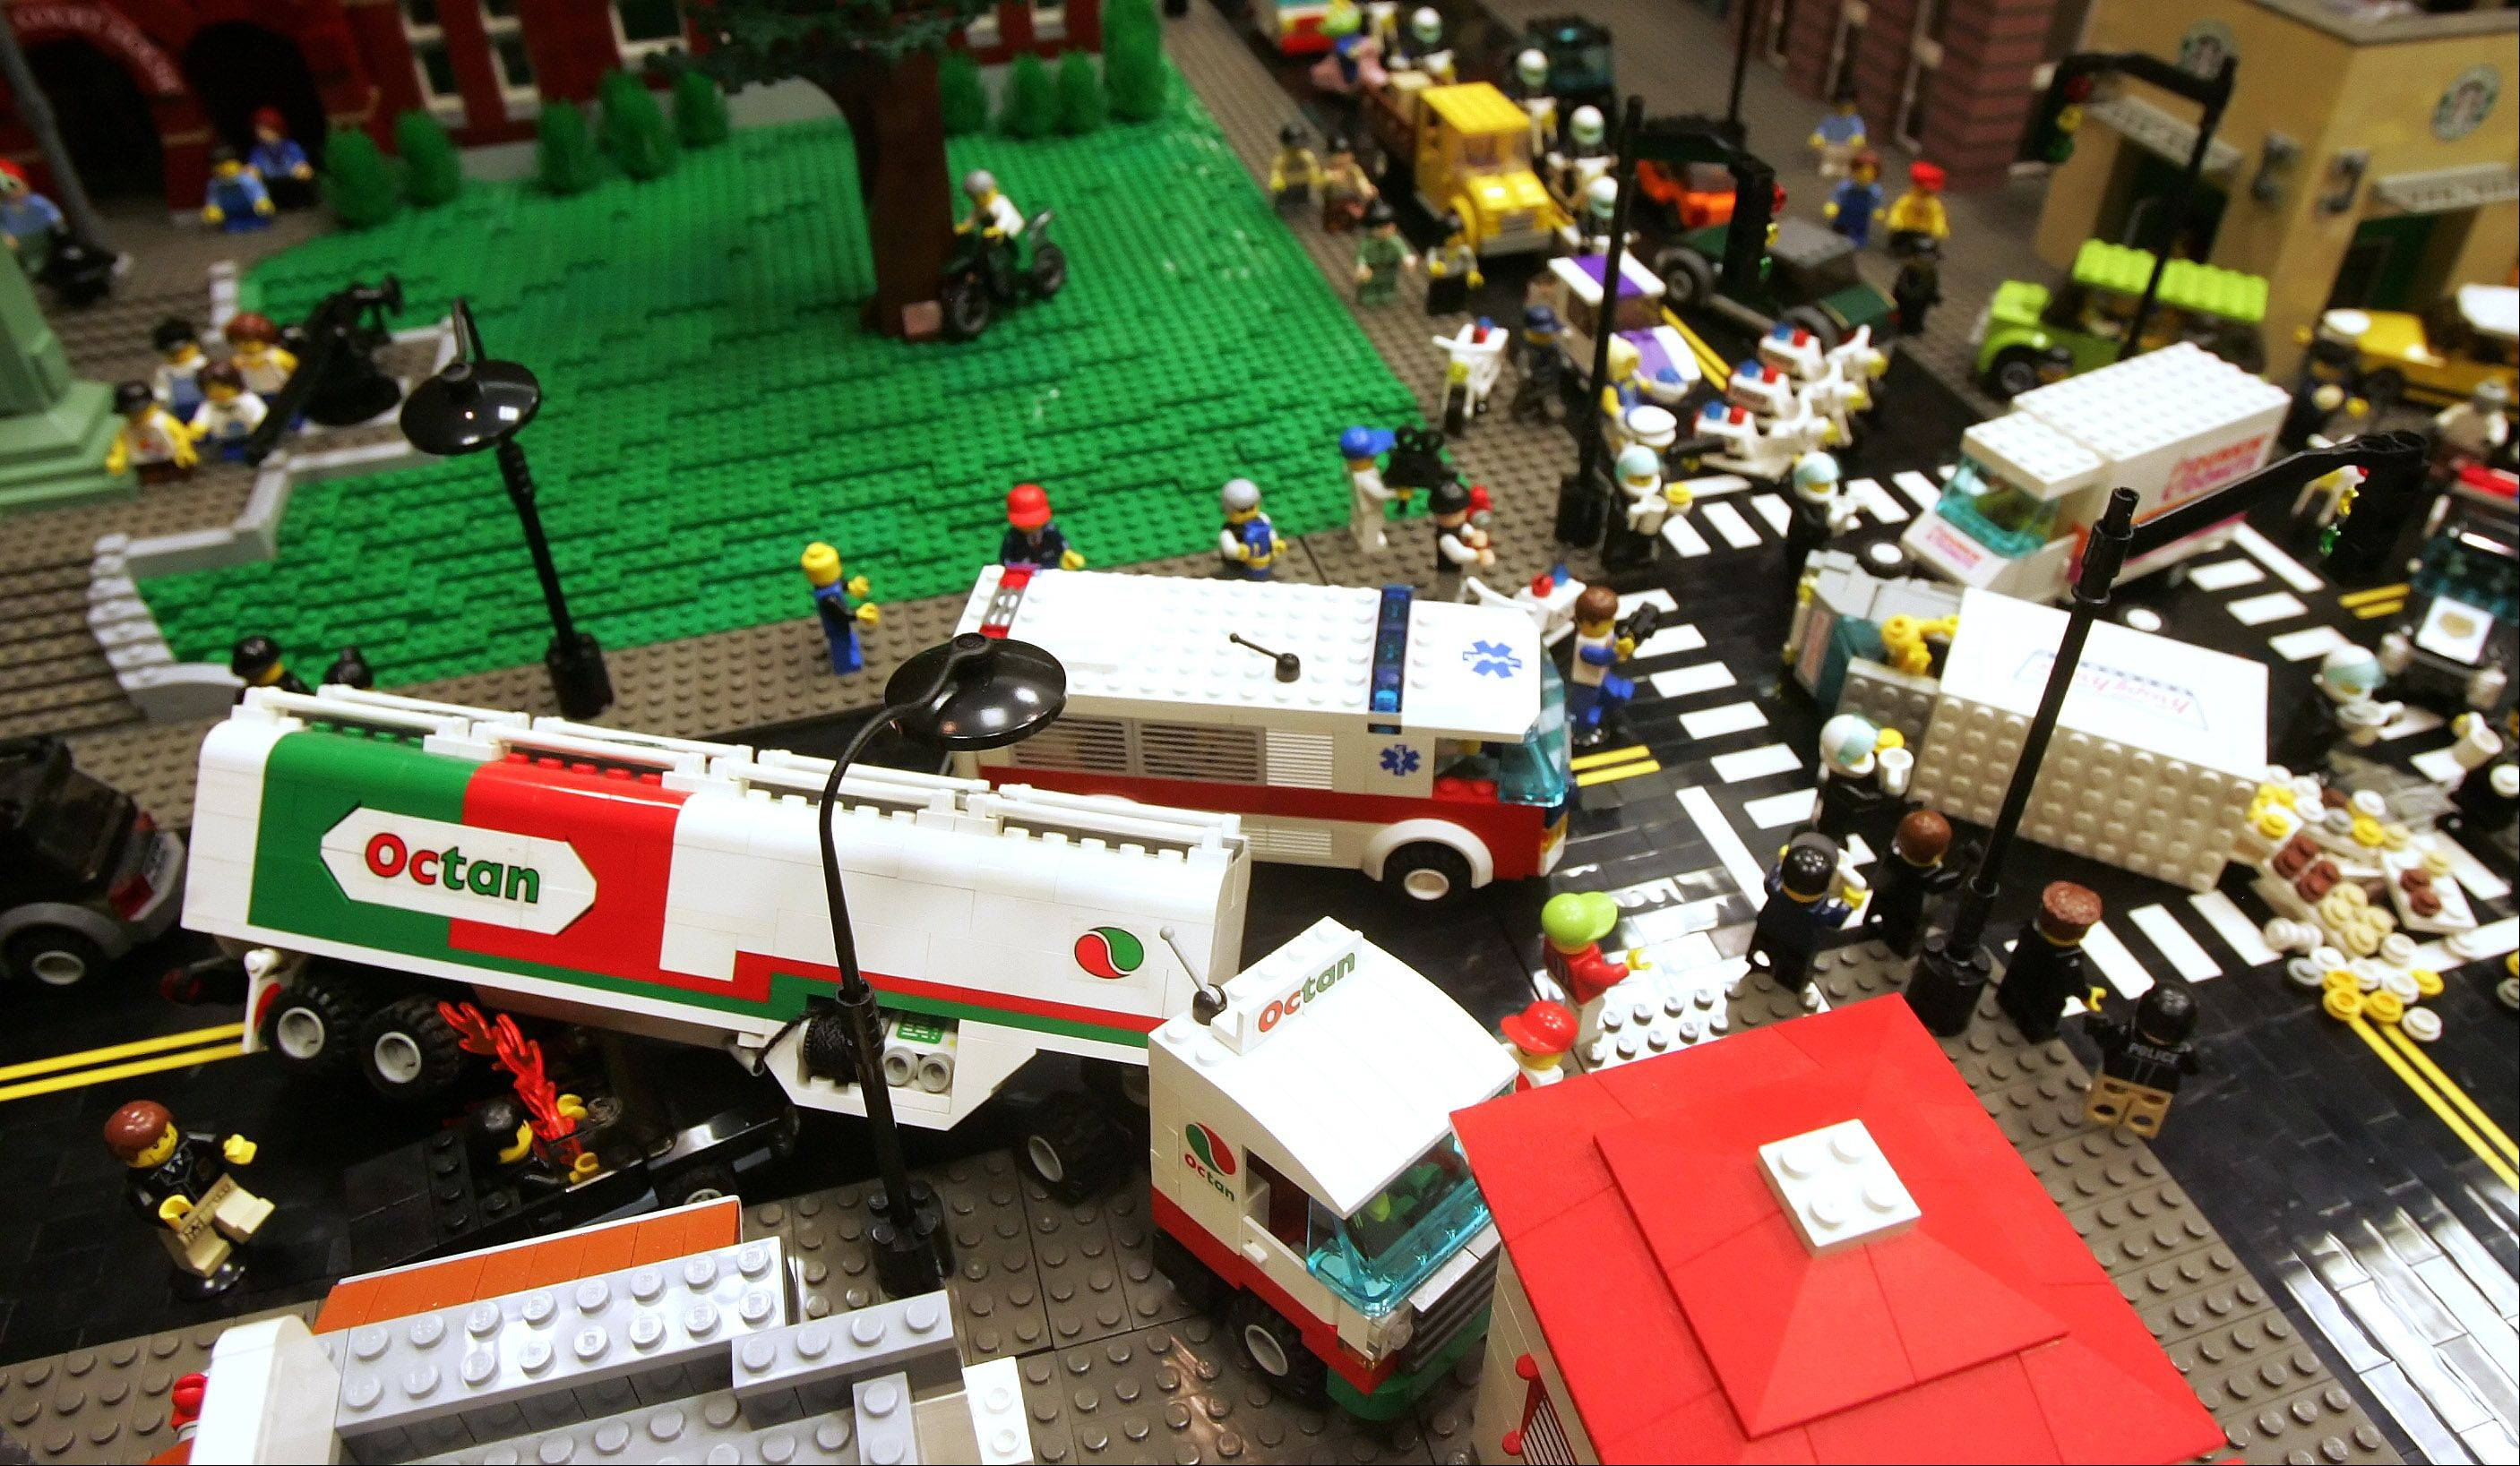 A traffic accident of Lego trucks blocks an intersection during the Northern Illinois Lego Train Club display Sunday at the Arlington Heights Memorial Library. Adults and children alike watched in amazement at all of the custom creations, vignettes and Lego mayhem as Lego trains ran through cities, villages and scenes from popular movies.